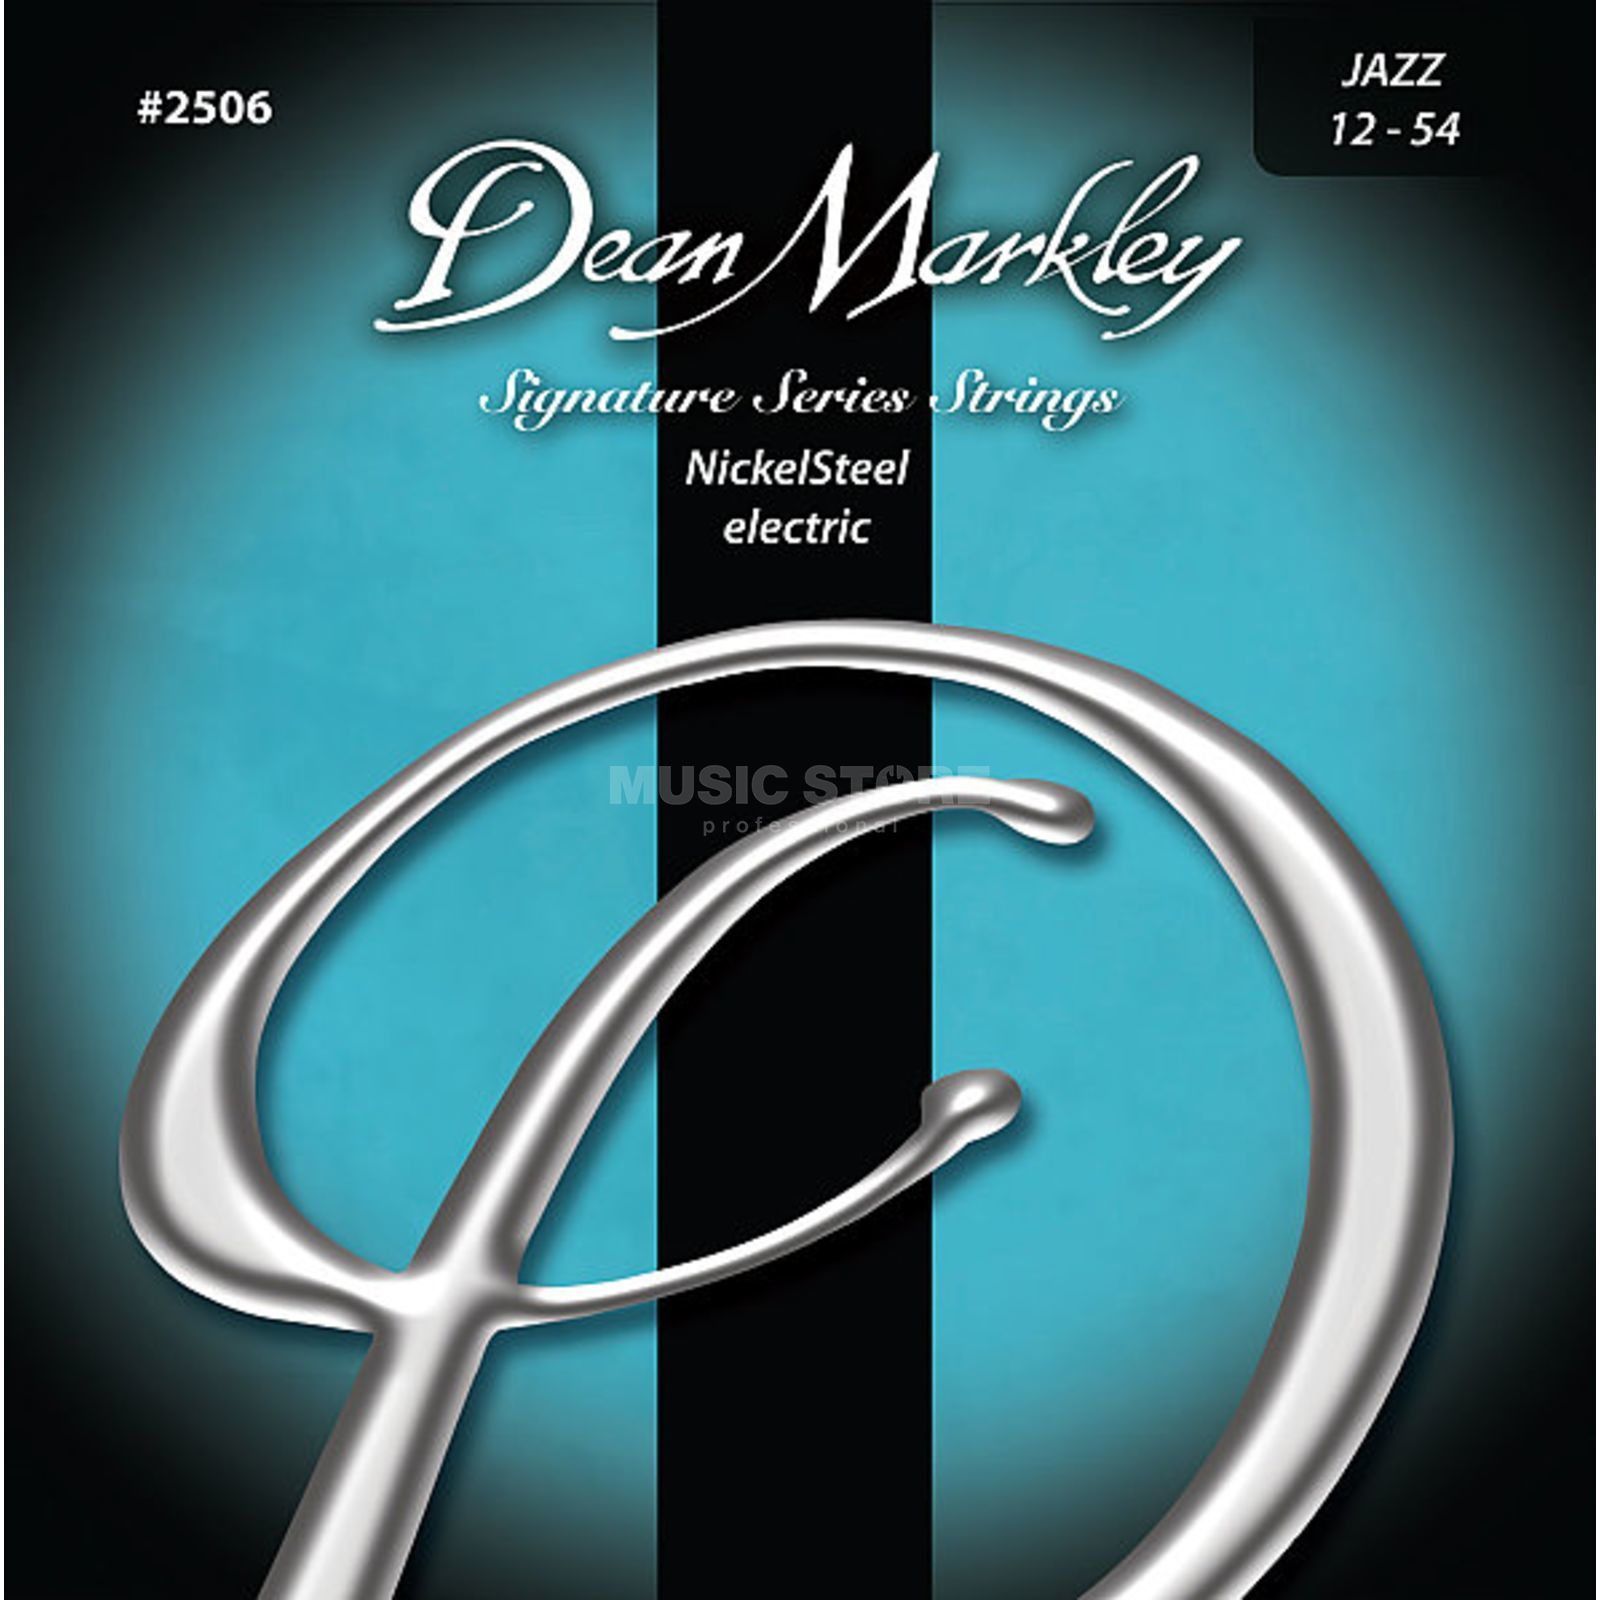 Dean Markley E-Guit. Strings, 12-54, Jazz, Nickel Steel Zdjęcie produktu